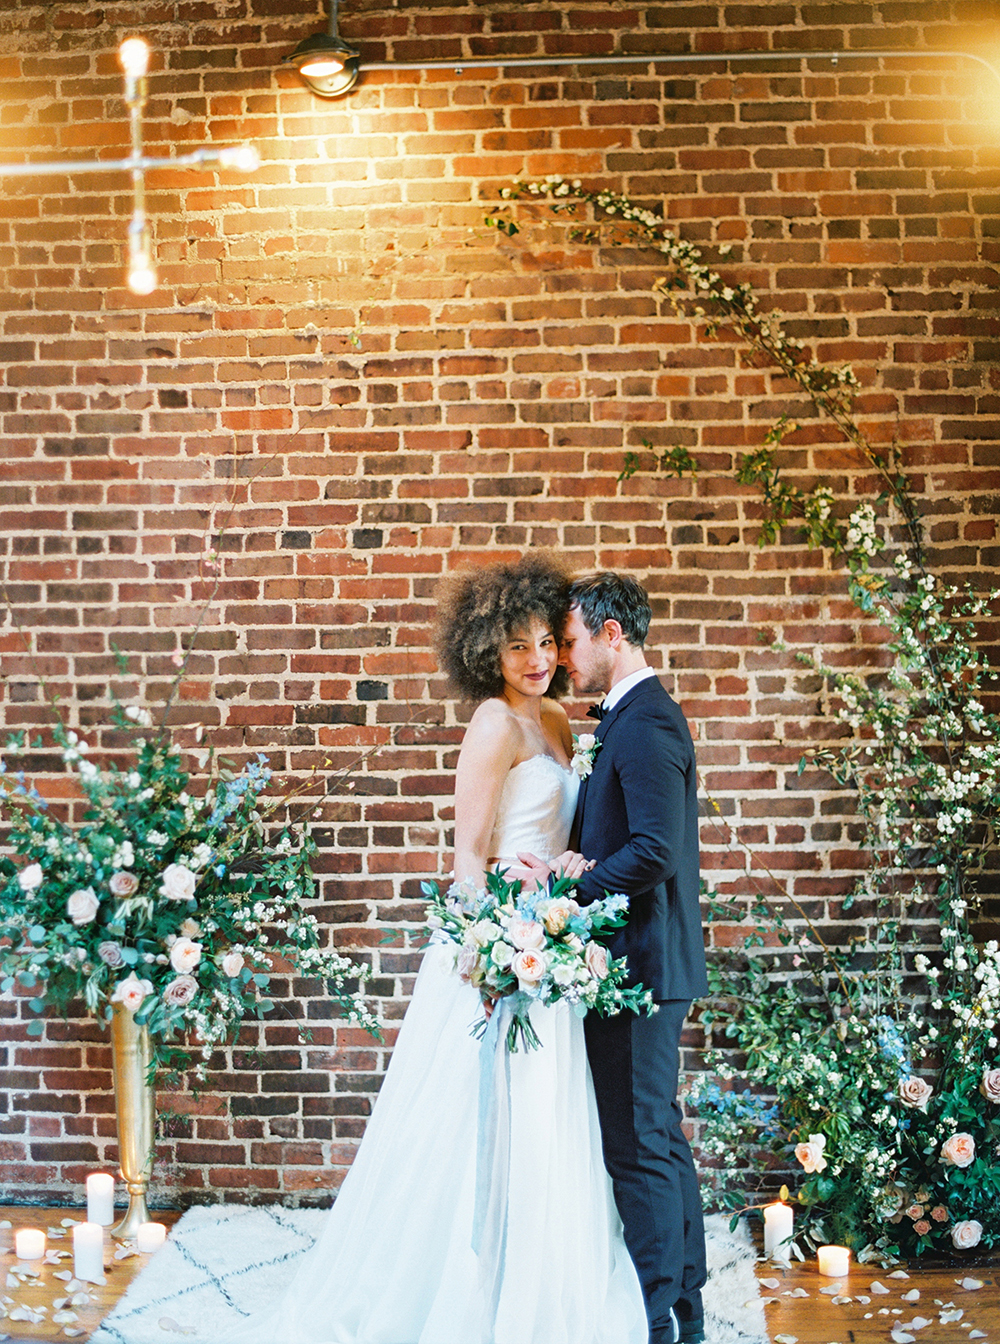 industrial wedding inspiration - photo by Photos by Heart http://ruffledblog.com/downtown-birmingham-spring-wedding-inspiration